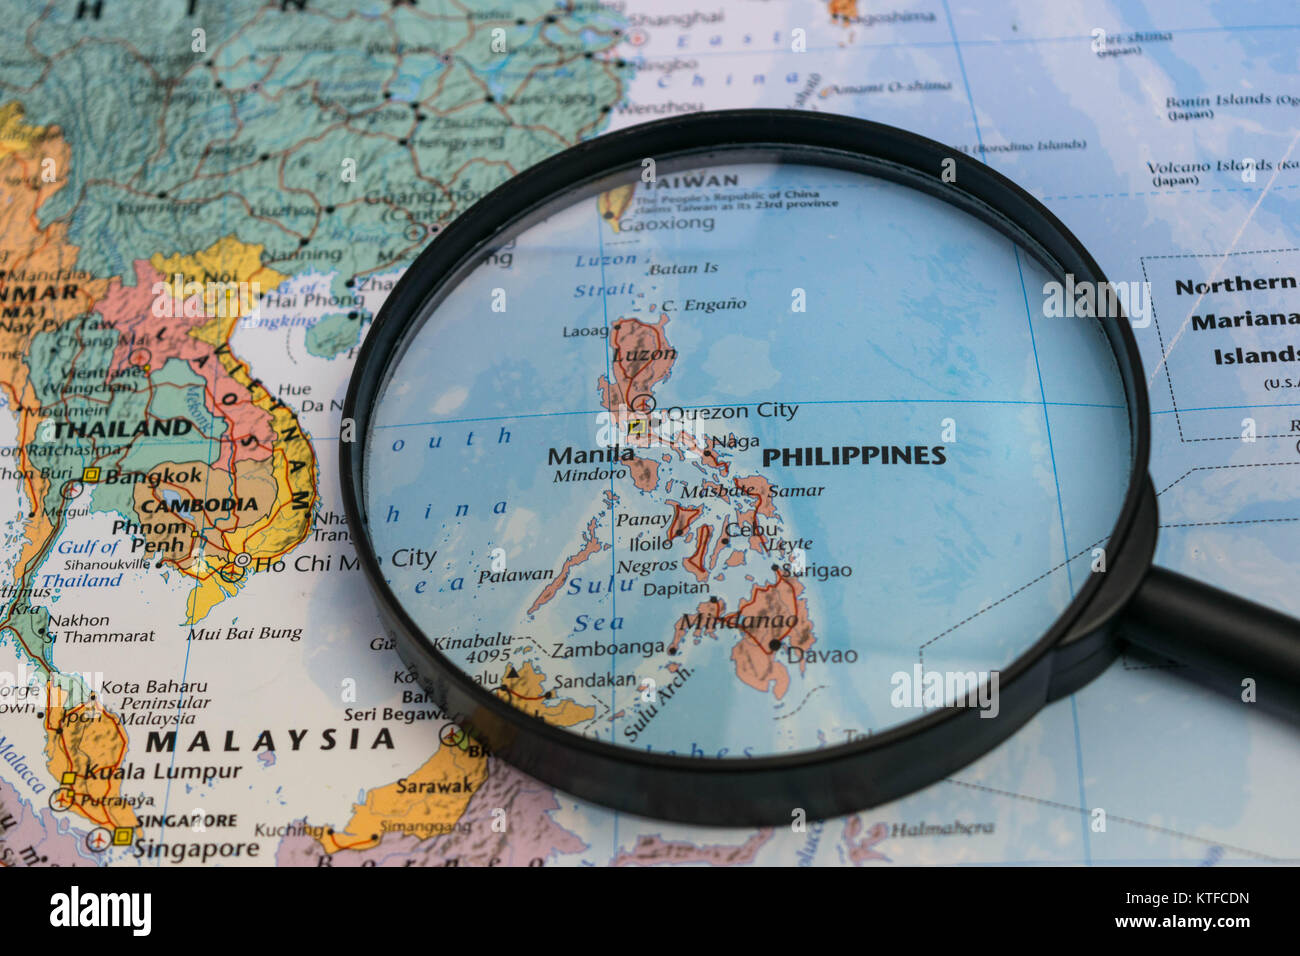 The Philippines Map Through Magnifying Glass On A World Map Stock